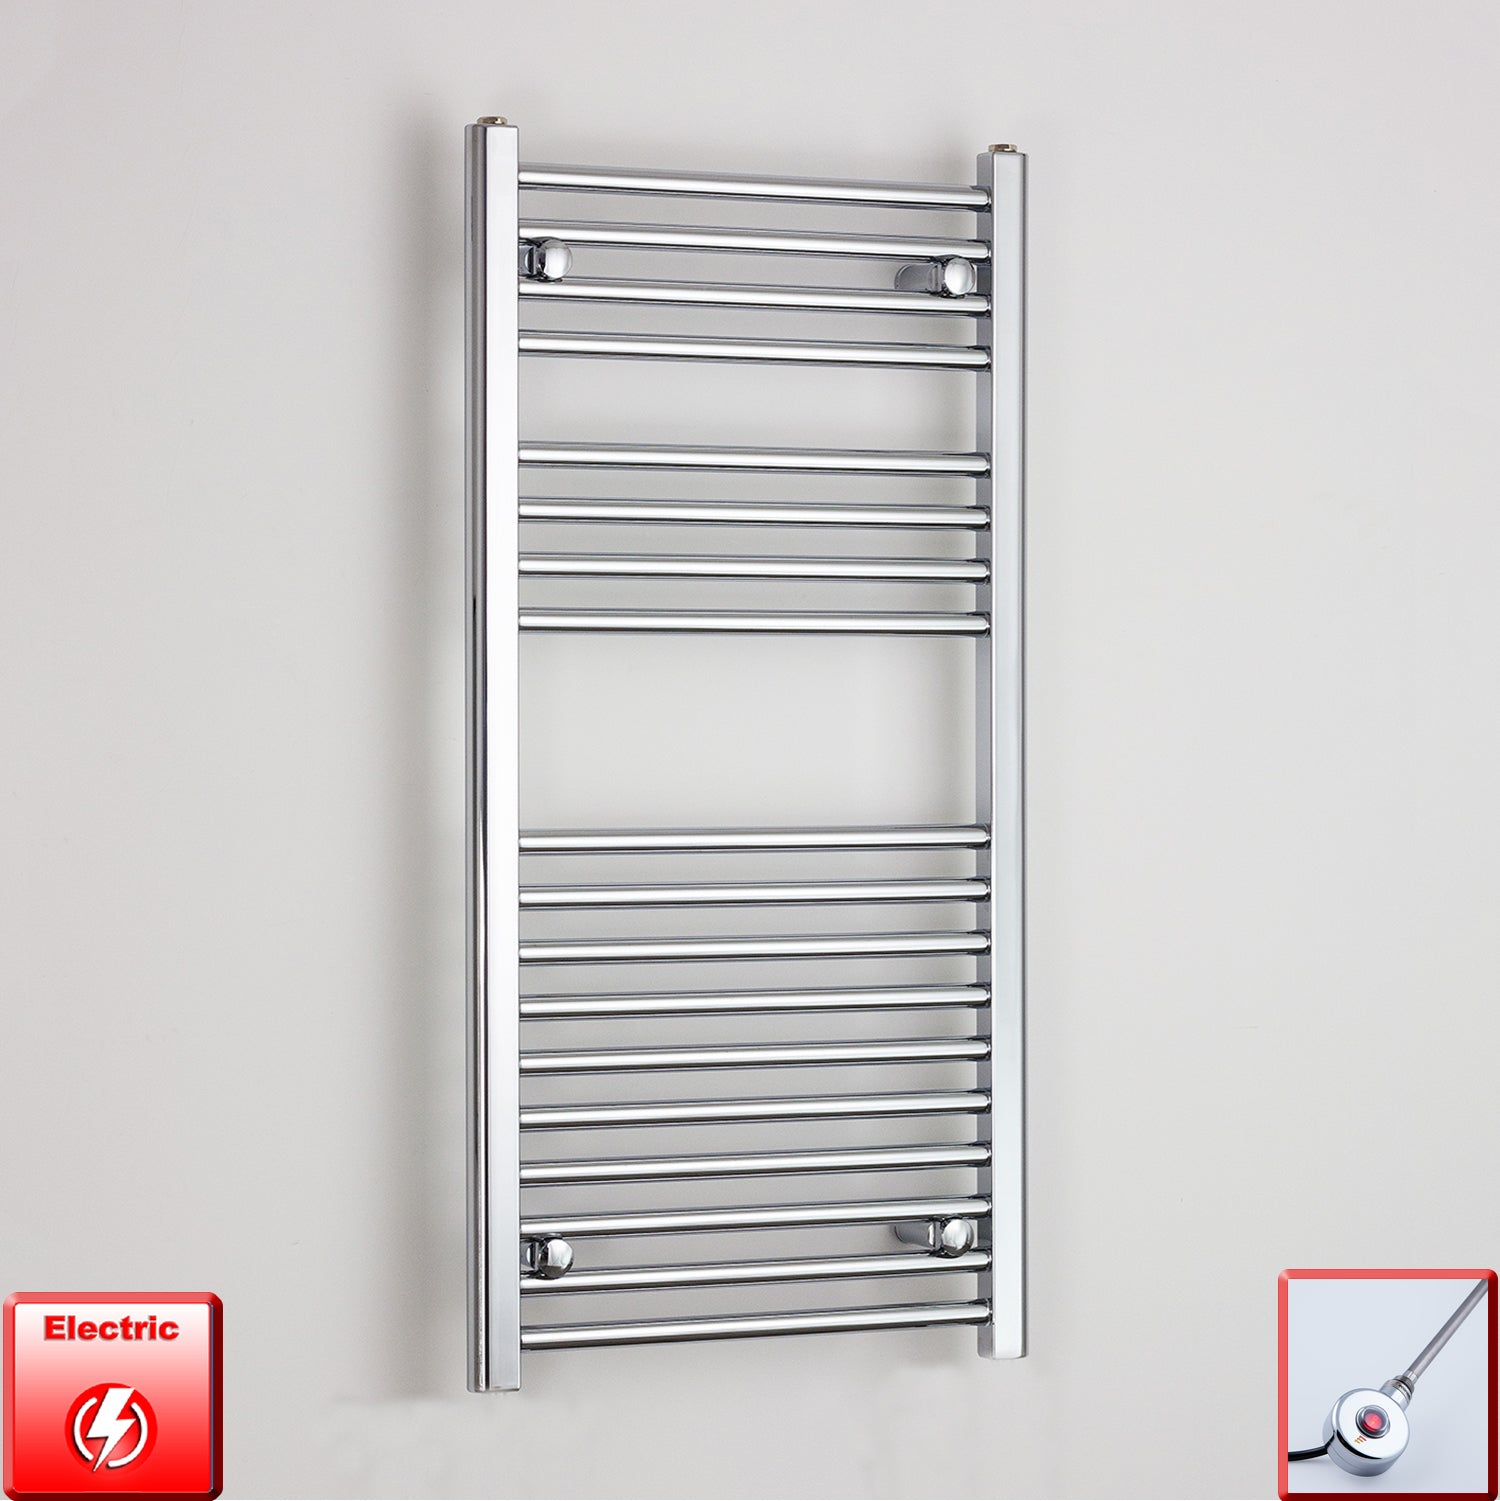 400mm Wide 1000mm High Pre-Filled Chrome Electric Towel Rail Radiator With Ecoradco on off Single Heat Element